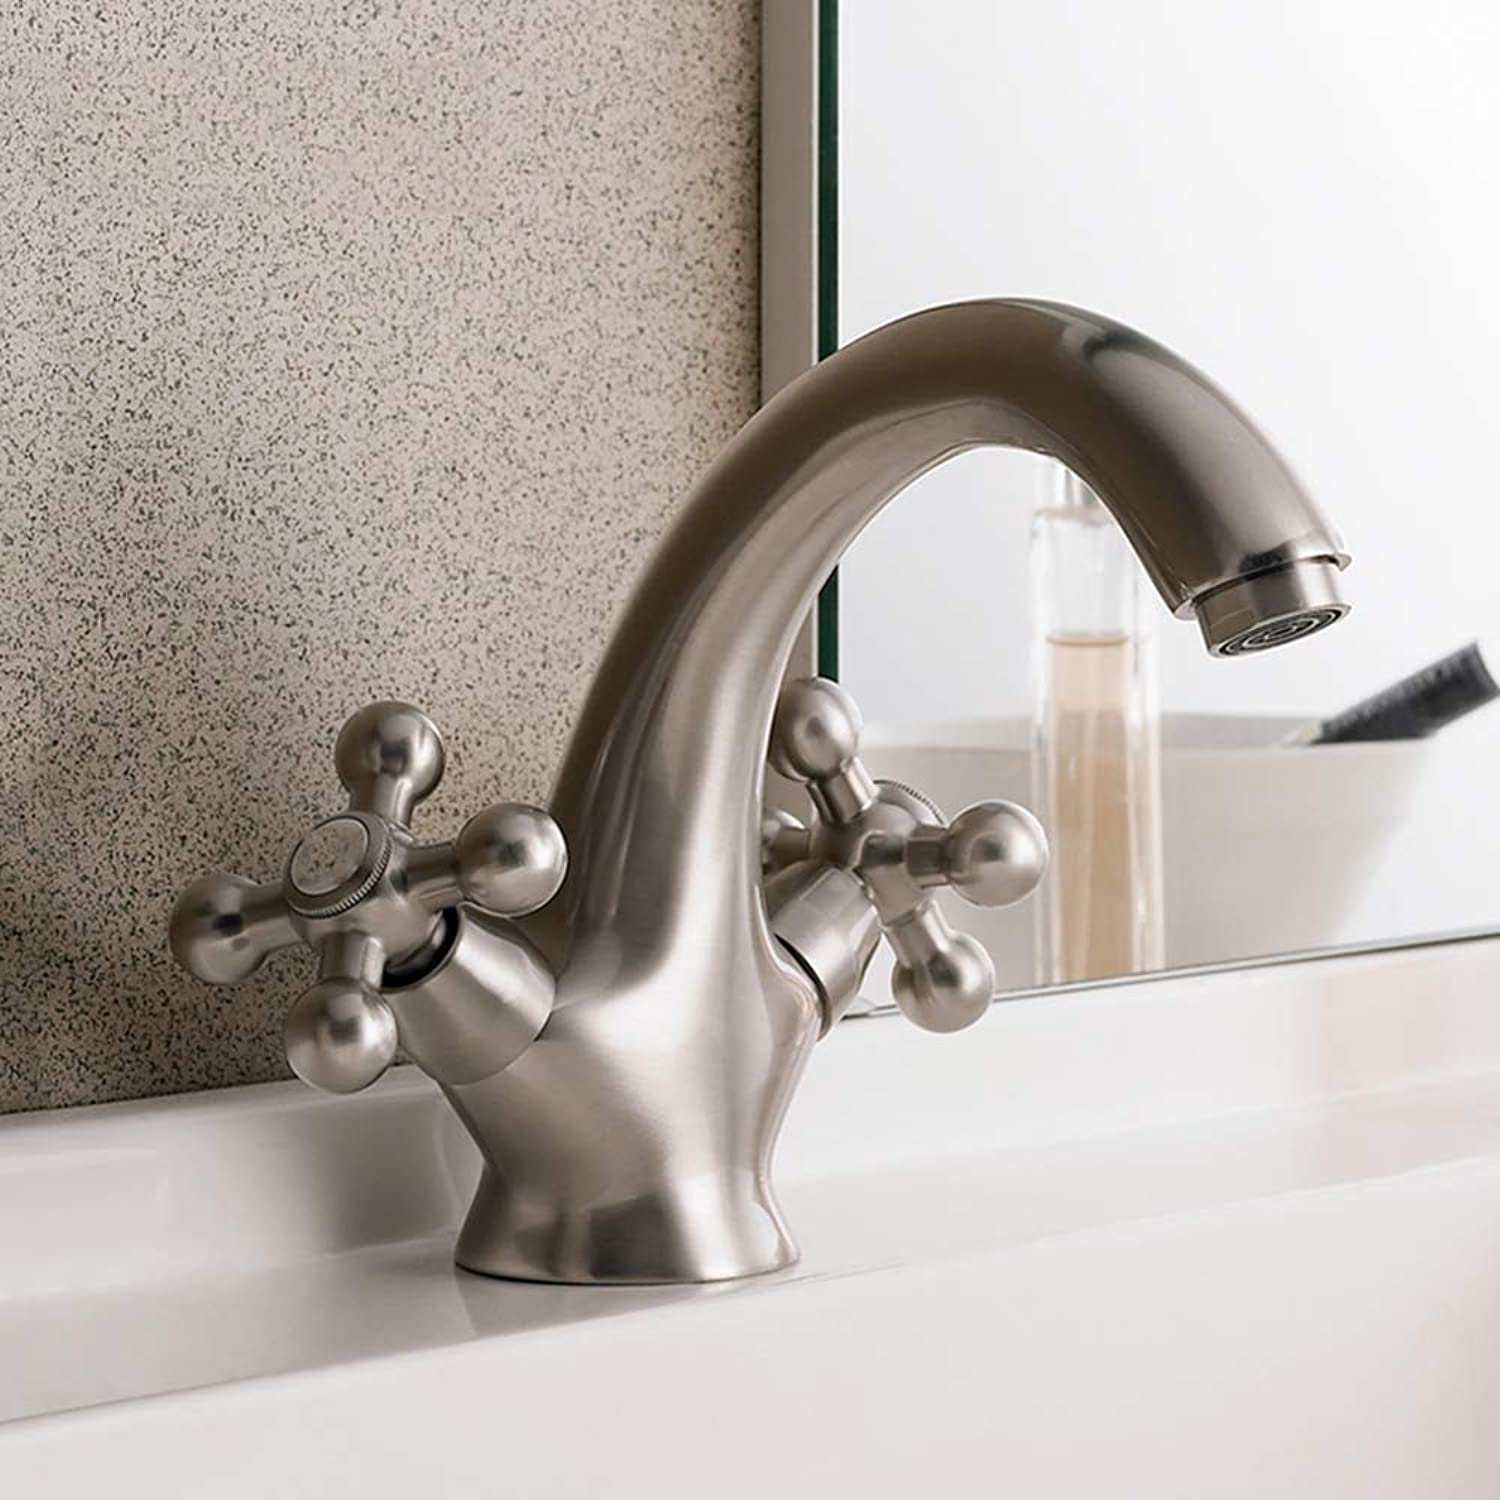 IFELGUD Brass Body Nickel Brushed Bathroom basin faucets Two handles Retro color